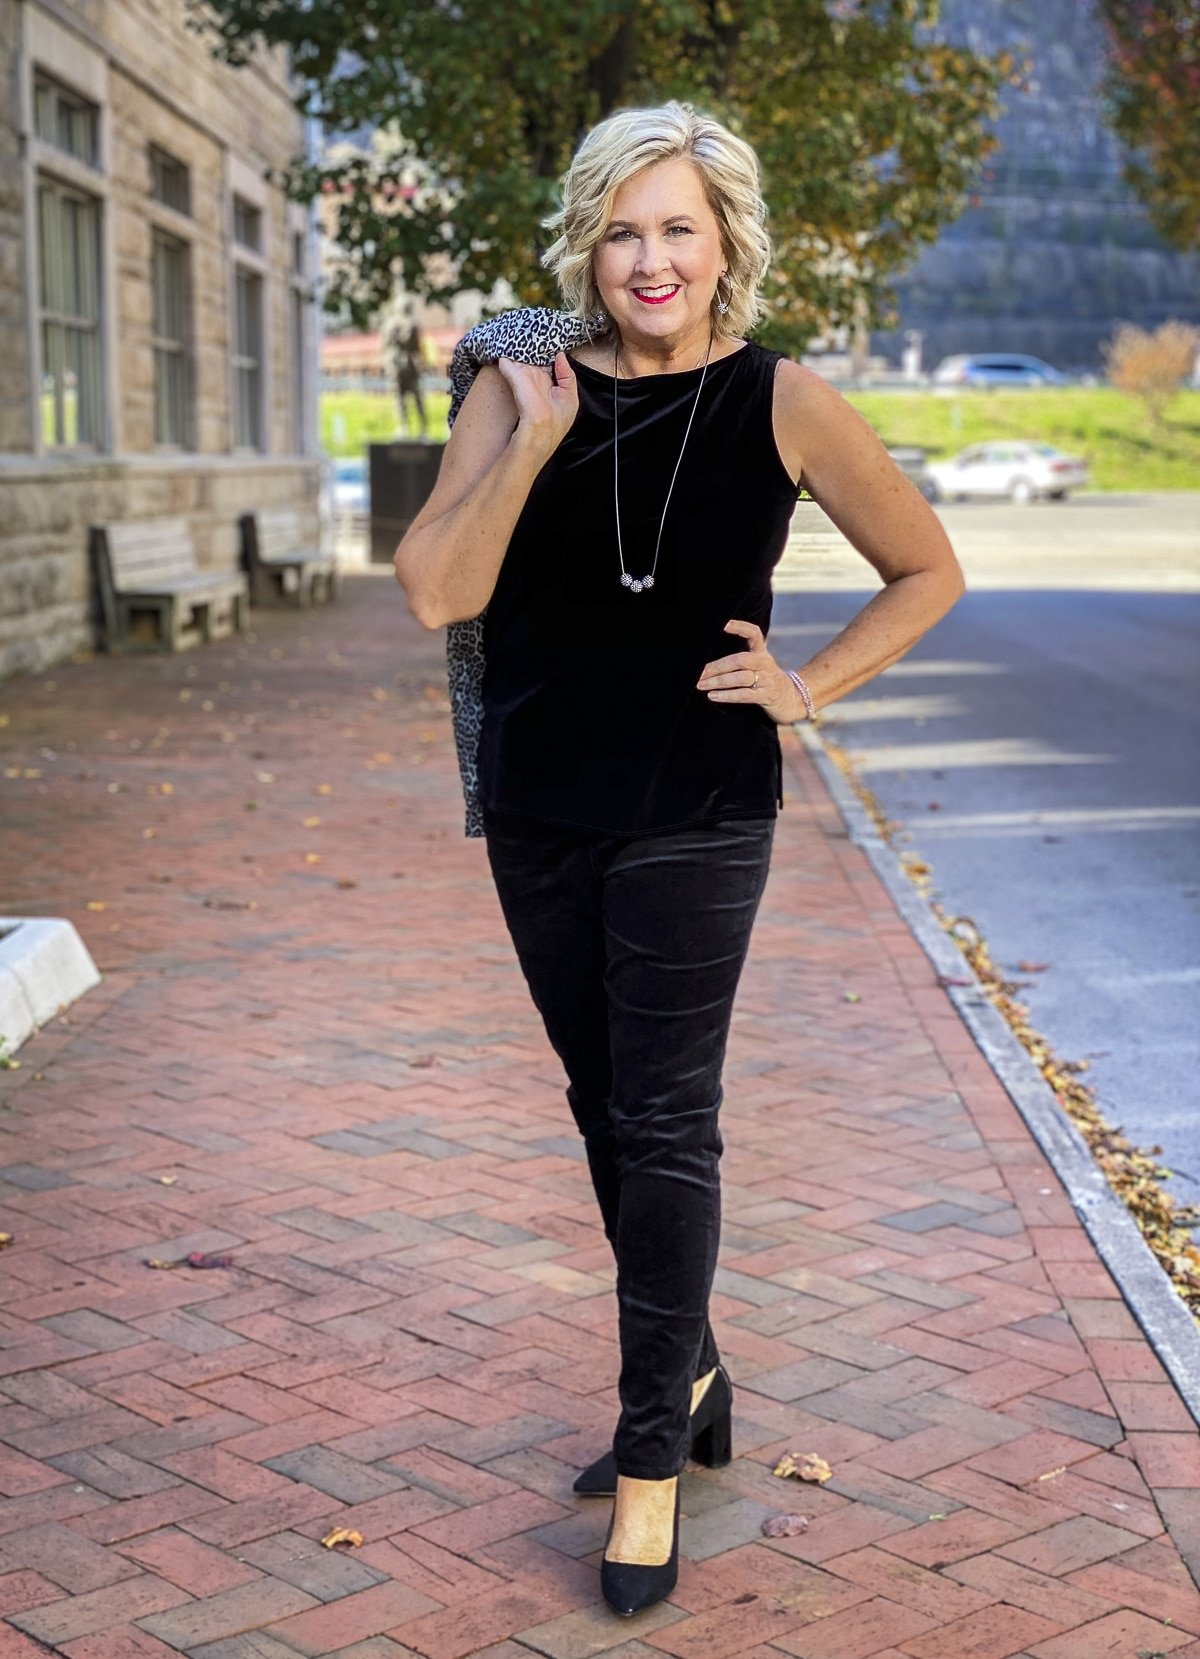 Fashion Blogger 50 Is Not Old is Holiday festive in a black velvet tank top and jeggings from Chico's